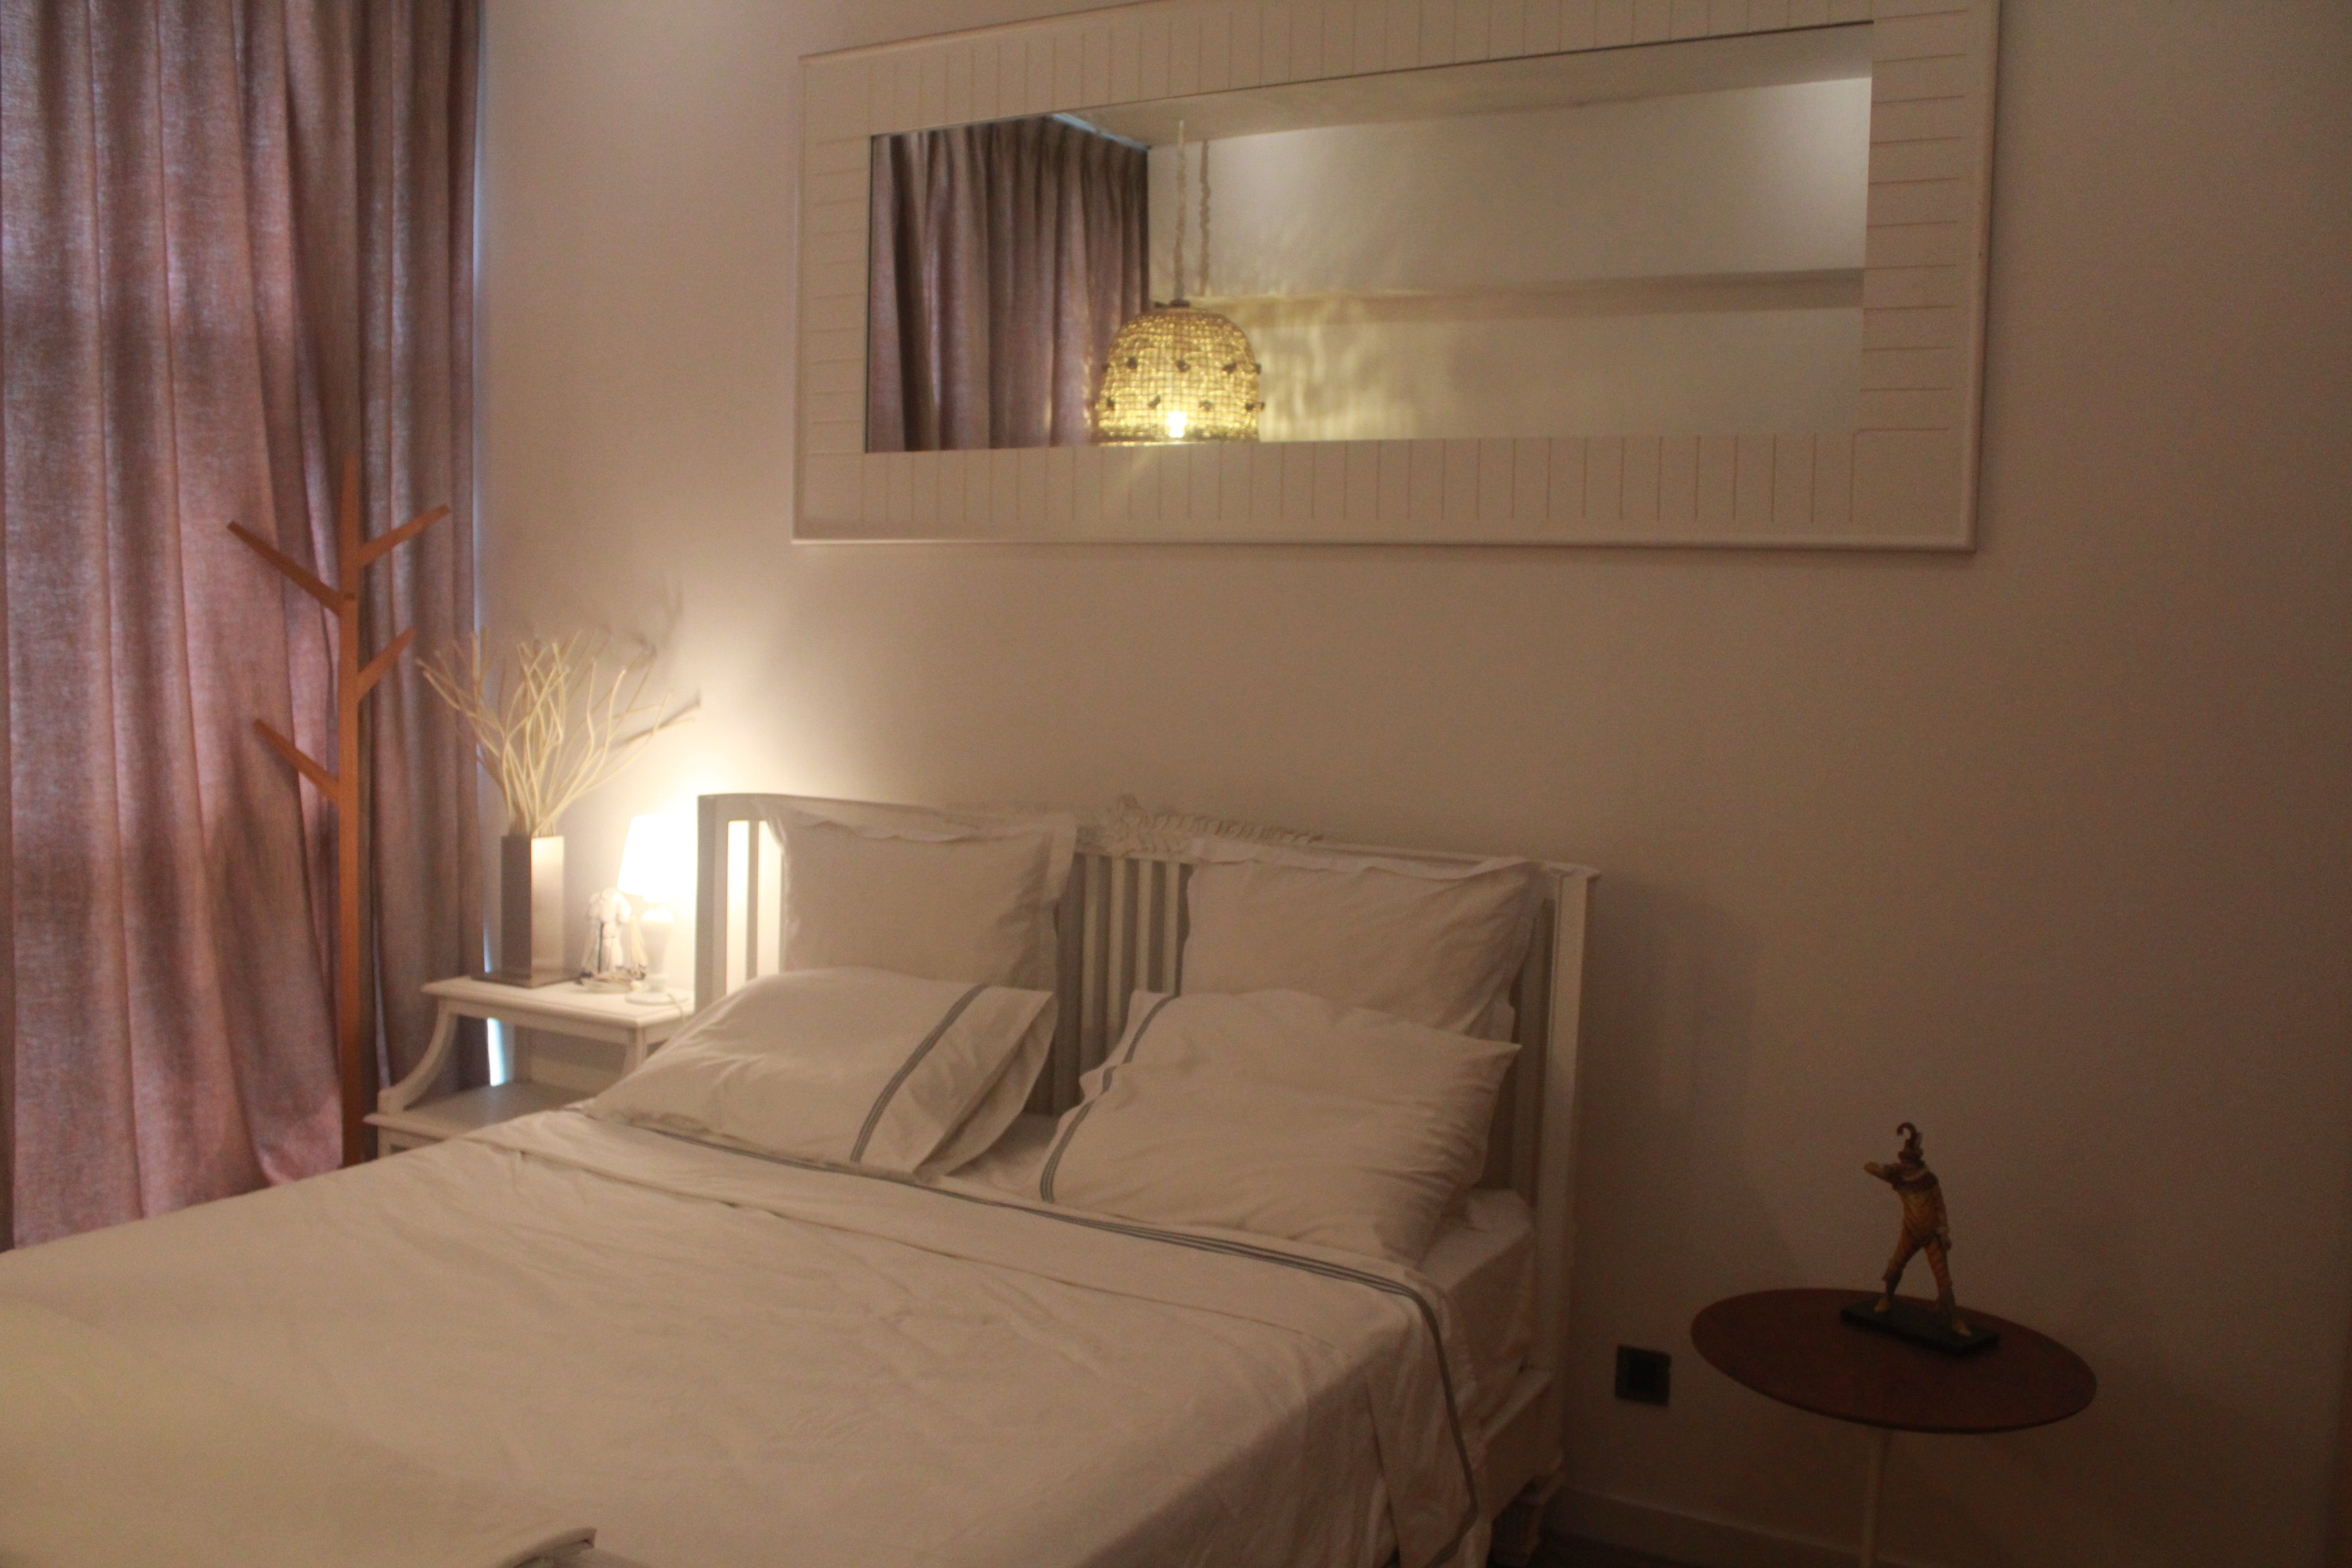 saigon pearl apartment for rent in binh thanh district hcmc D201237(15)